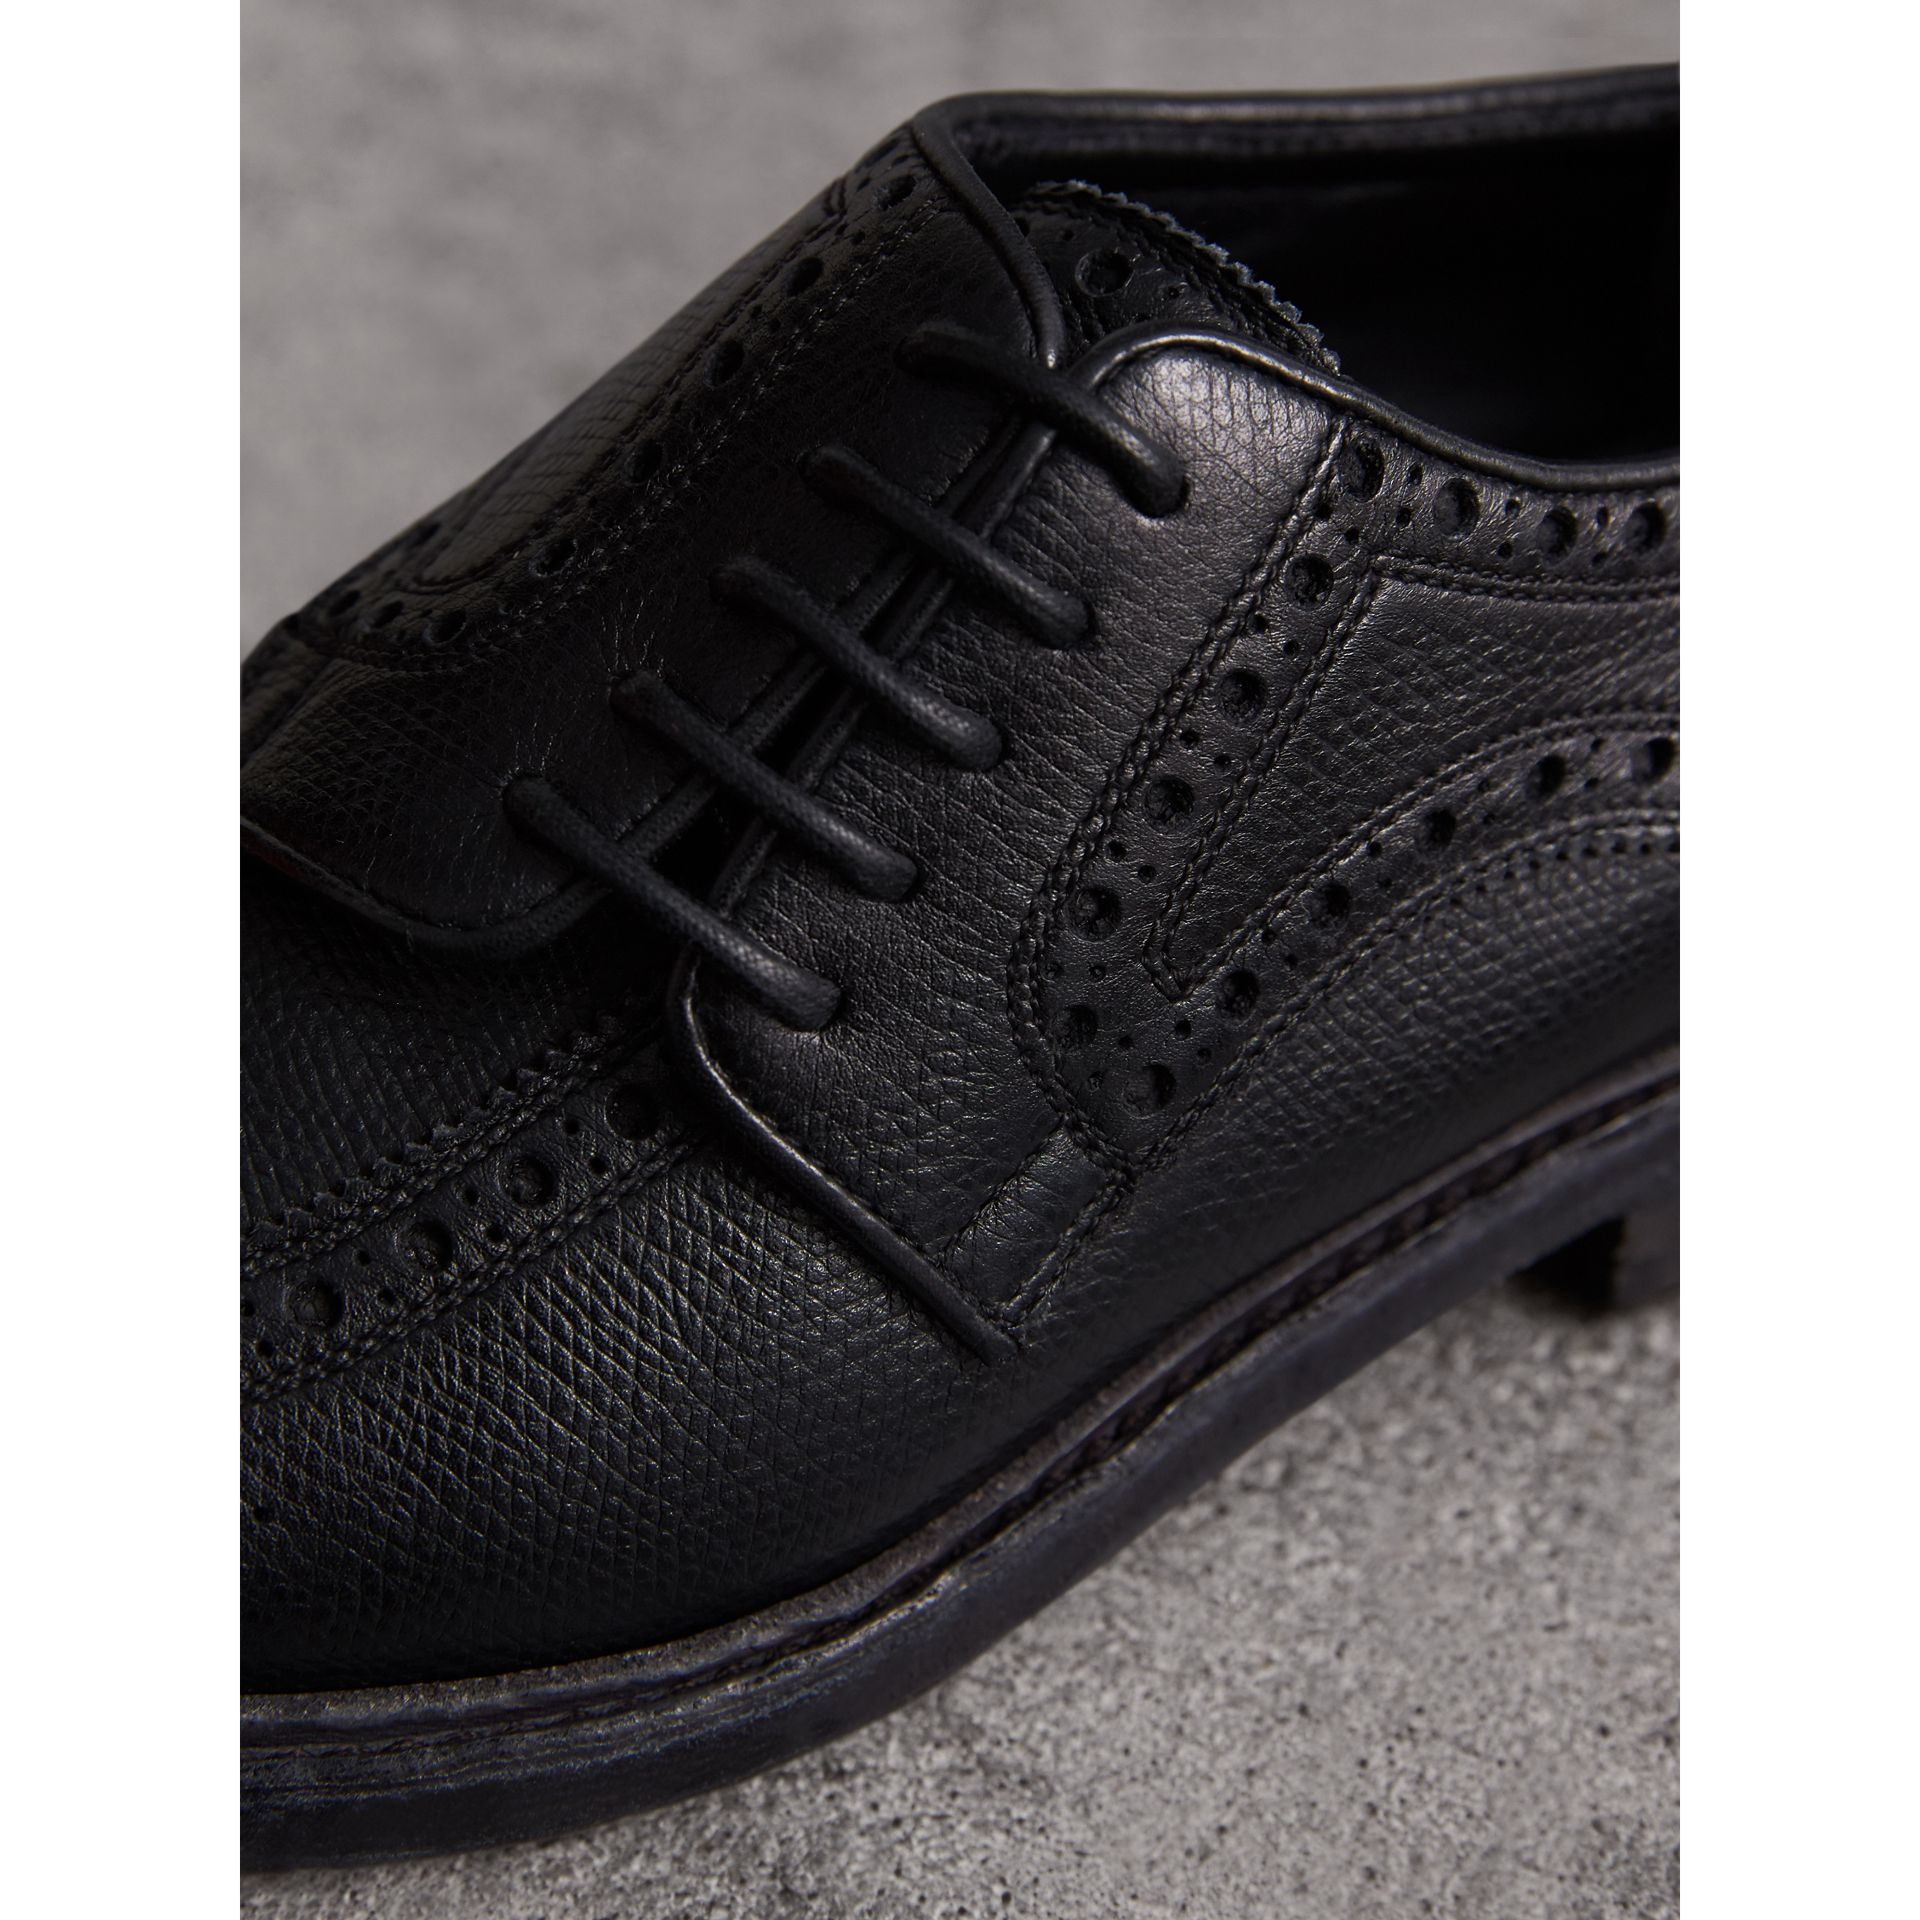 Lace-up Brogue Detail Textured Leather Asymmetric Shoes in Black - Women | Burberry - gallery image 2